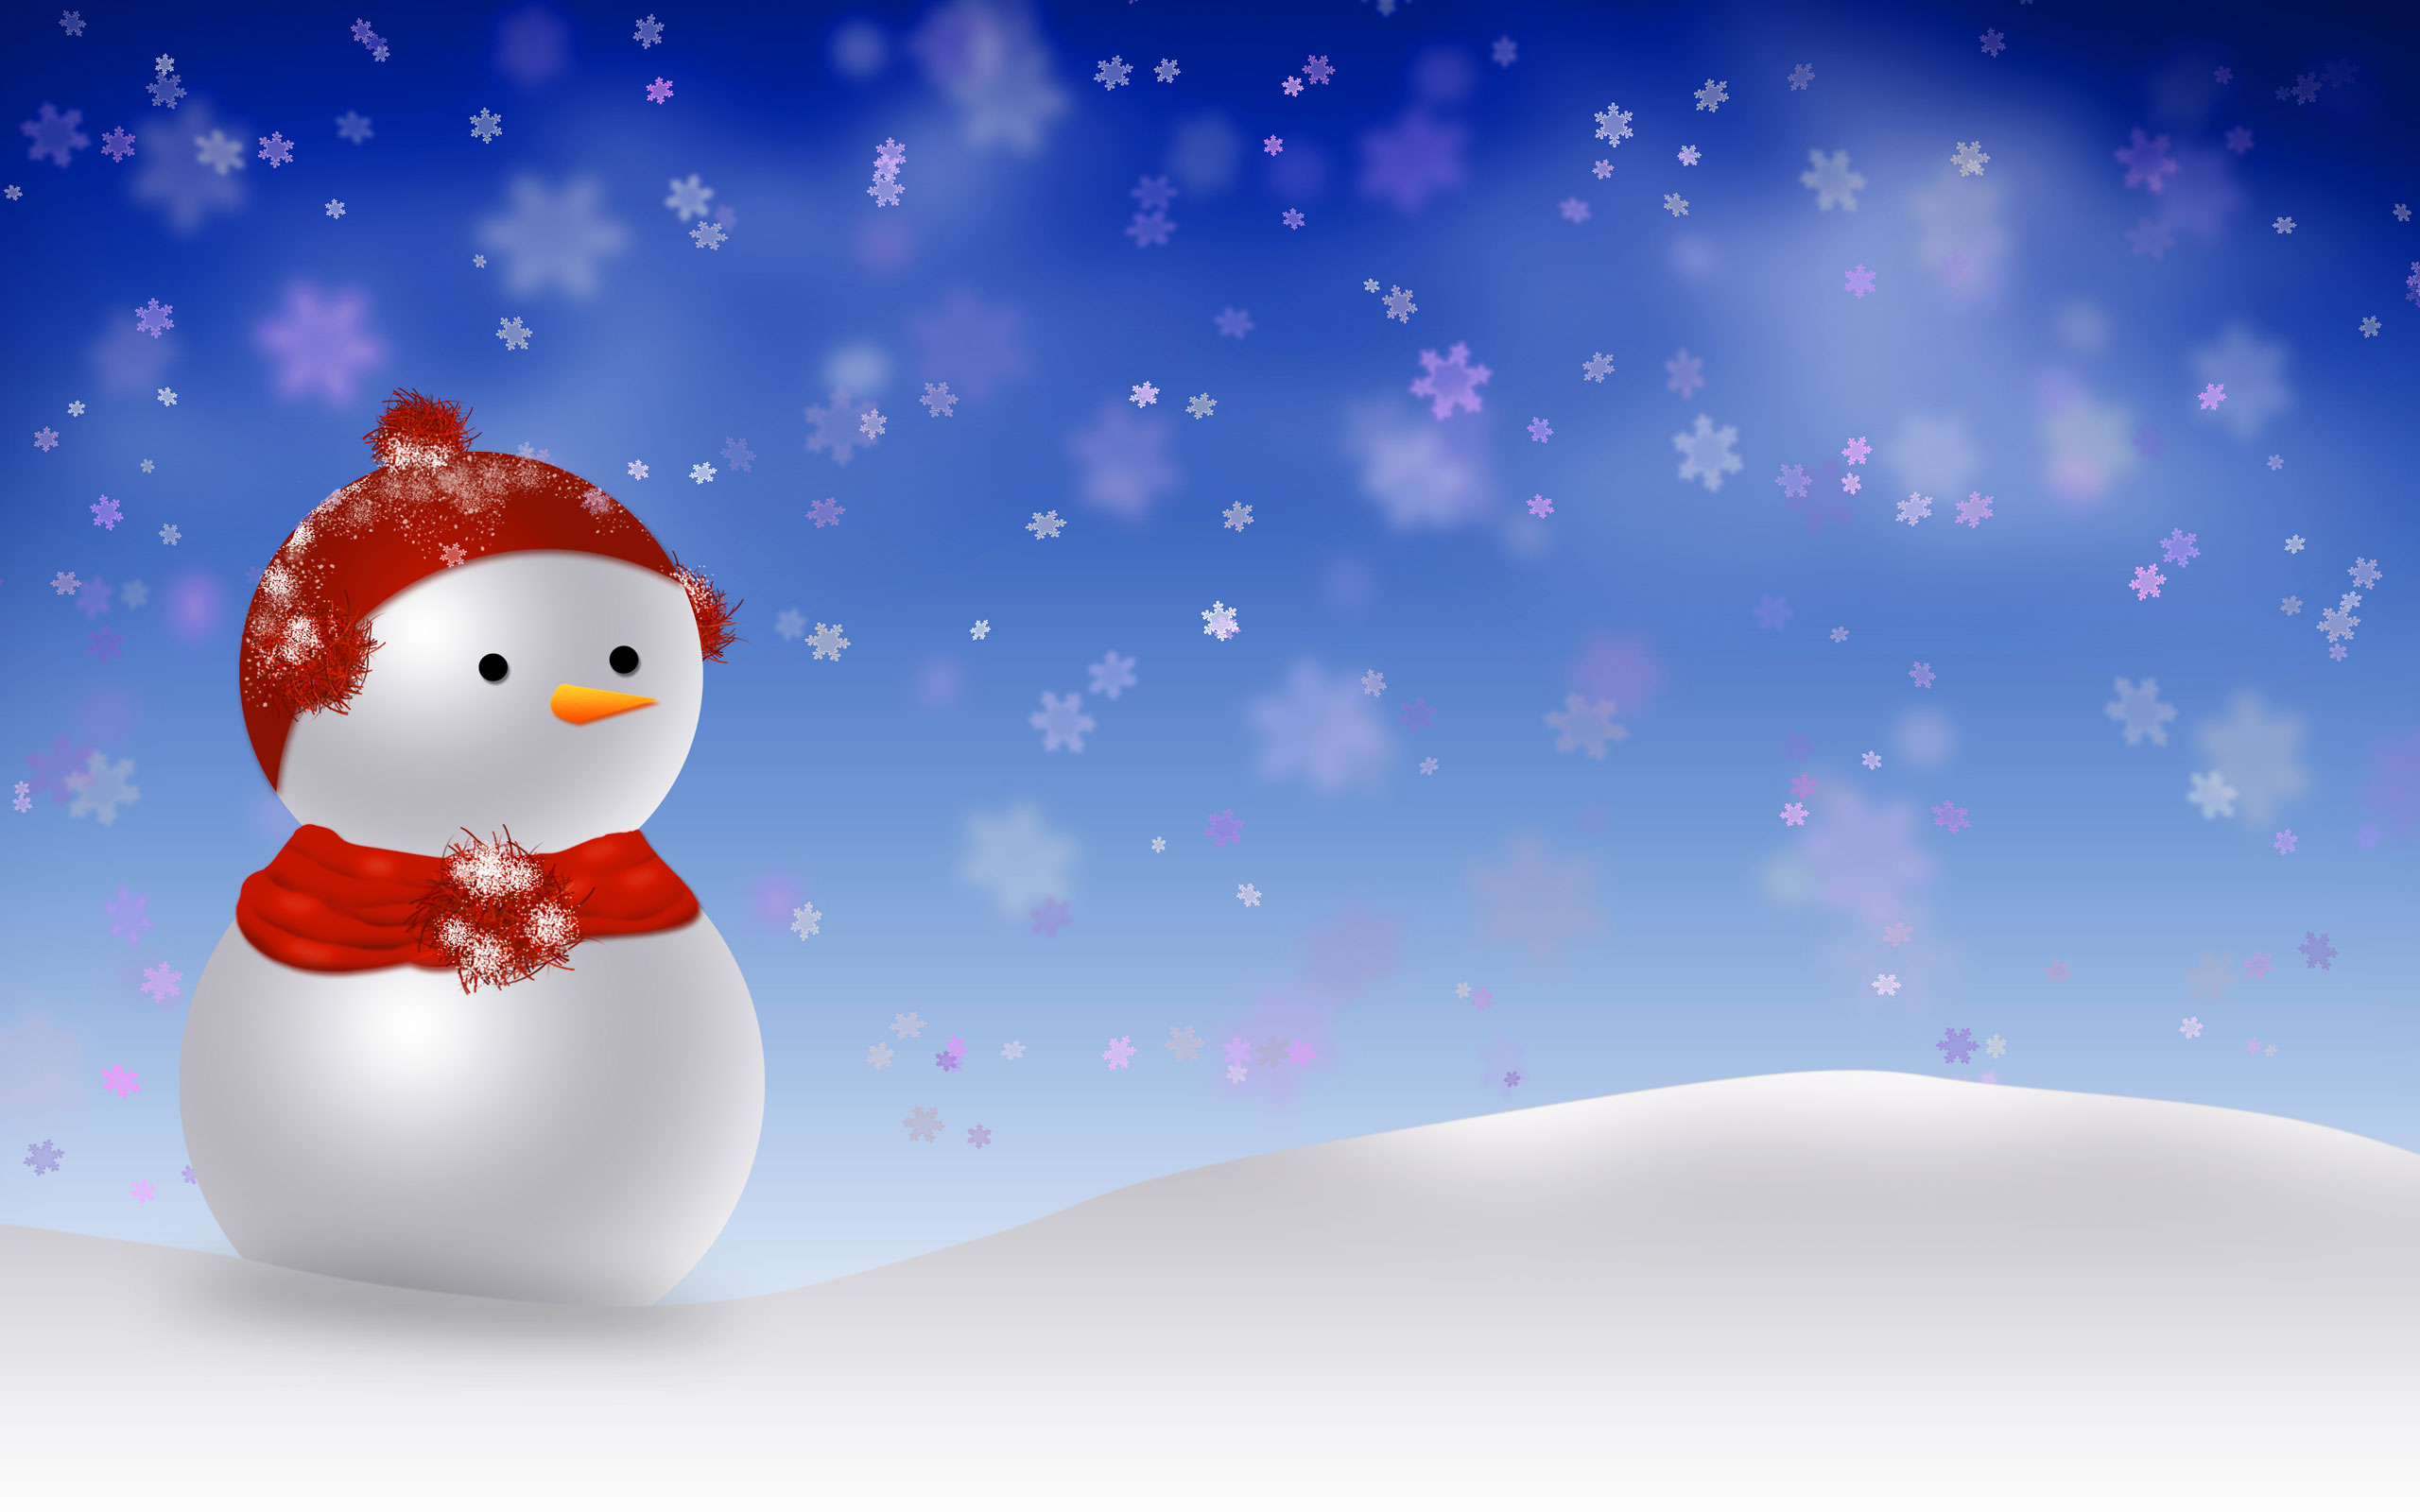 Cute Christmas Backgrounds Cute Christmas Desktop Backgrounds 2560x1600